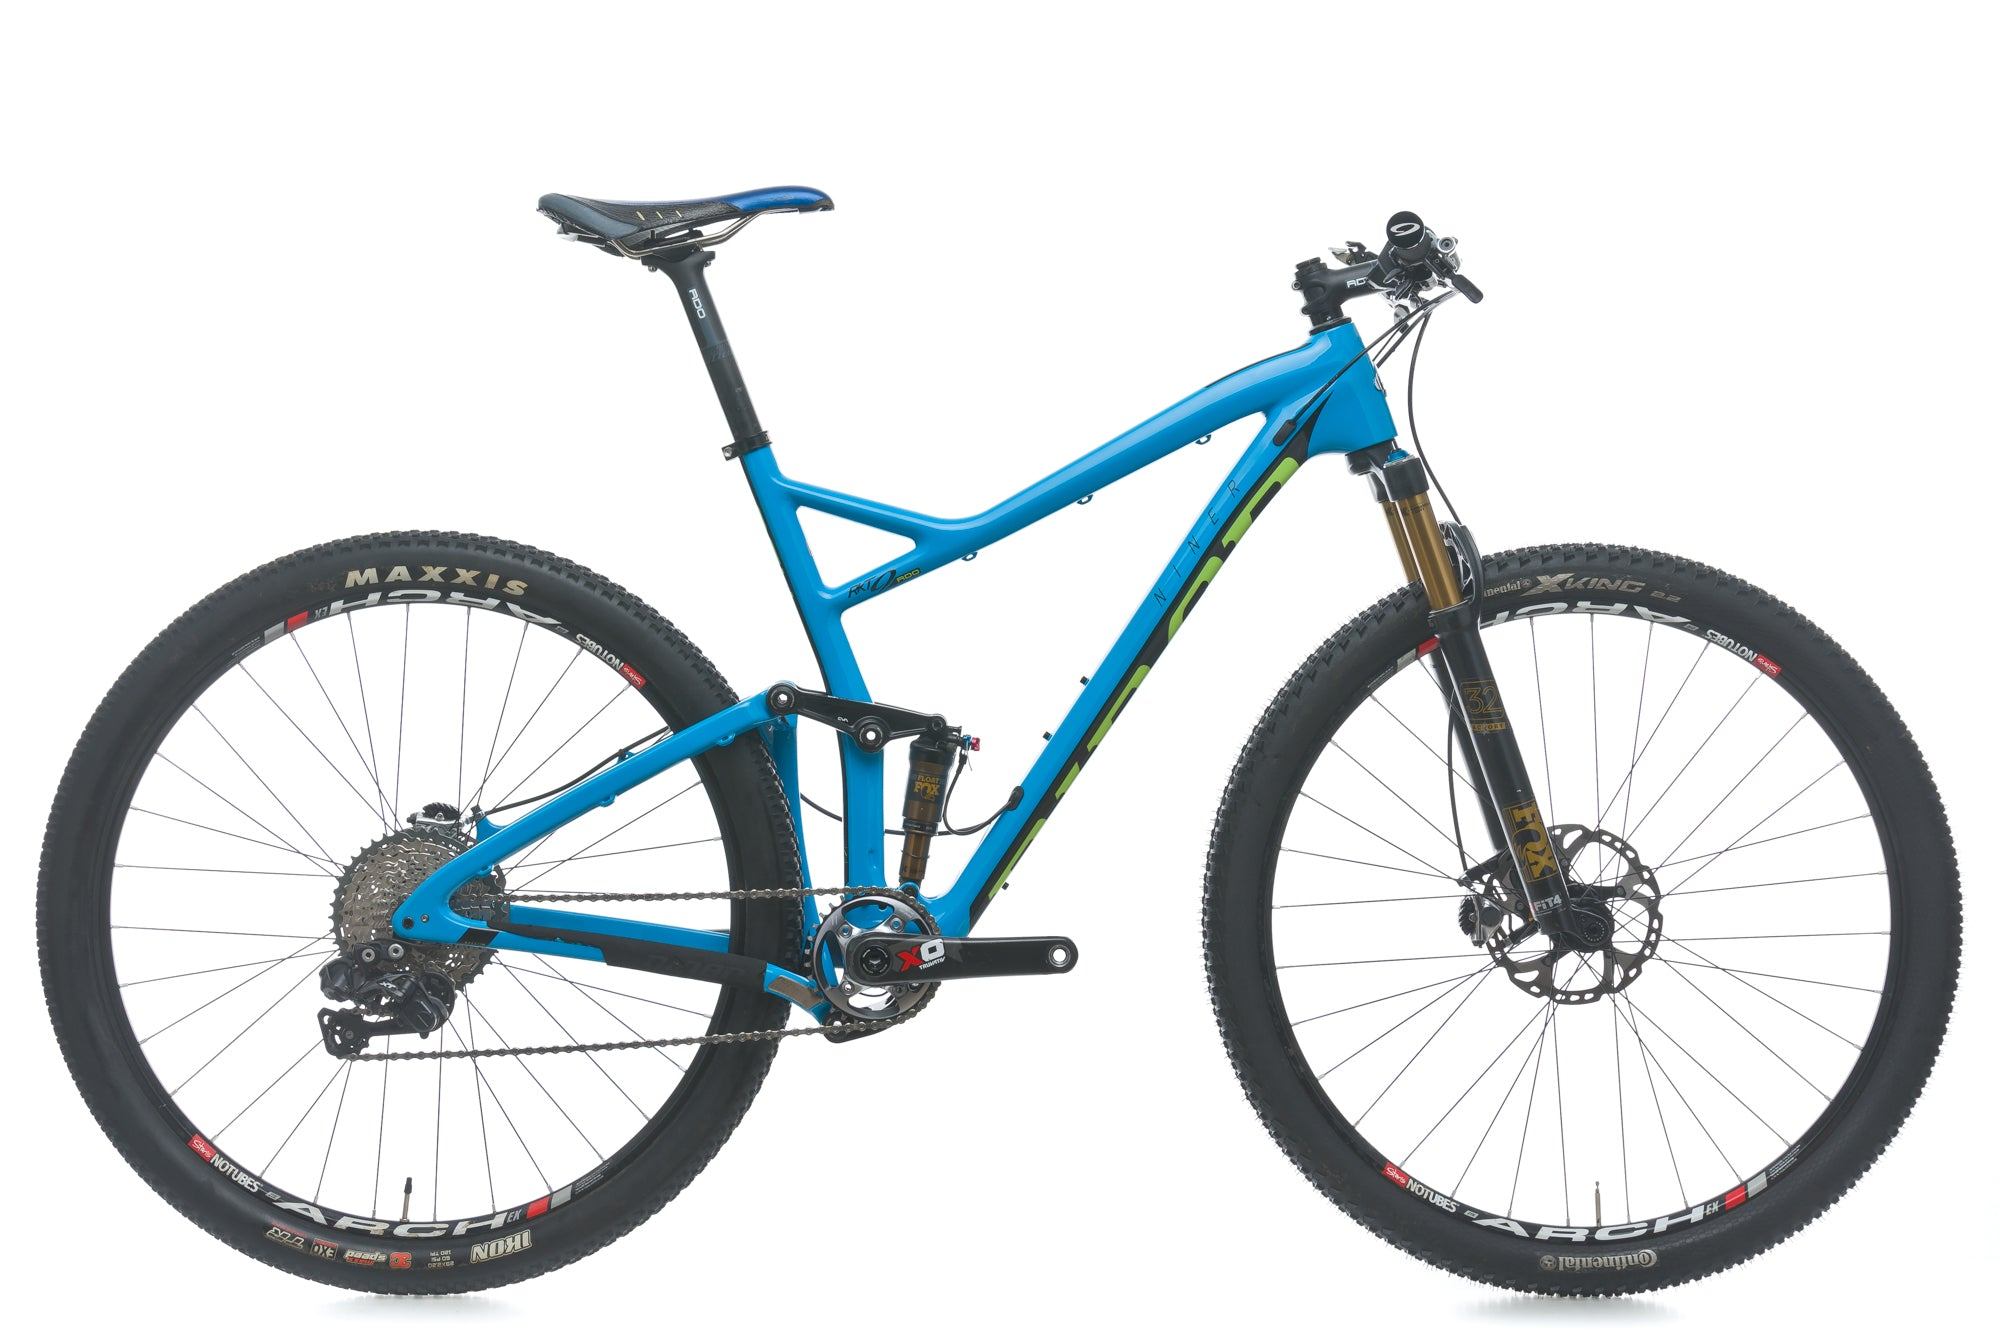 Niner RKT 9 RDO Large Bike - 2017 drive side